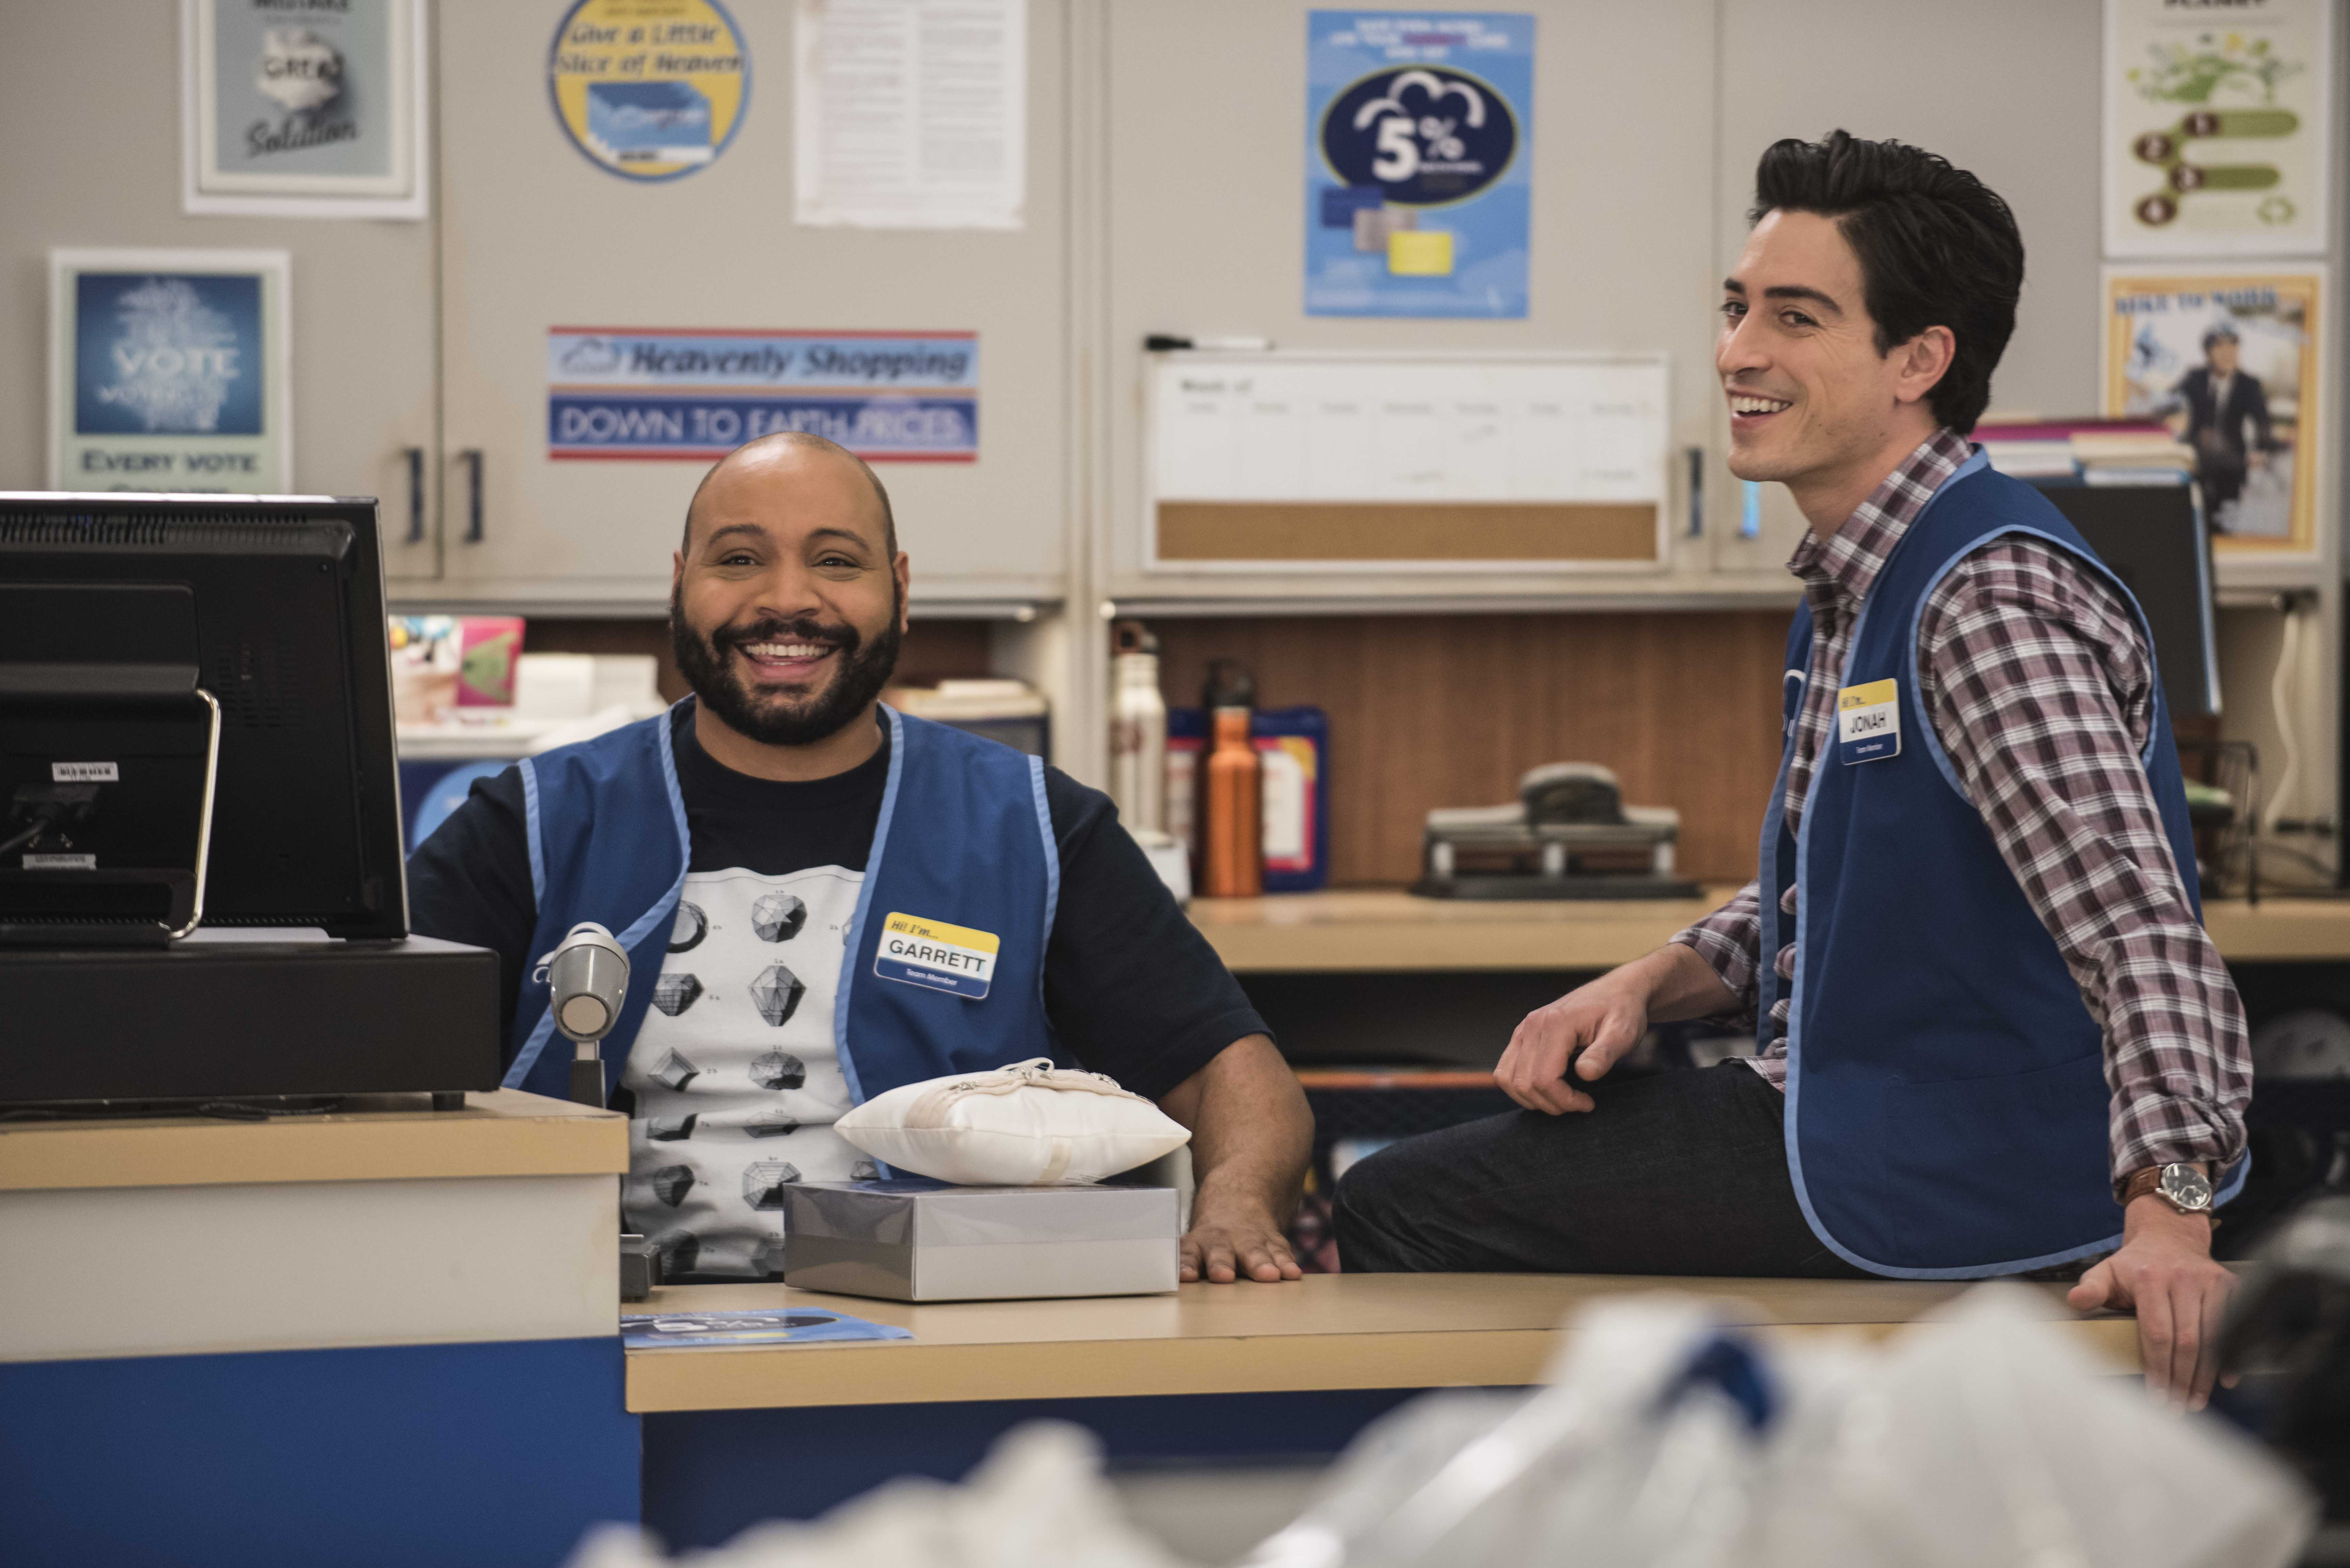 NBC Superstore